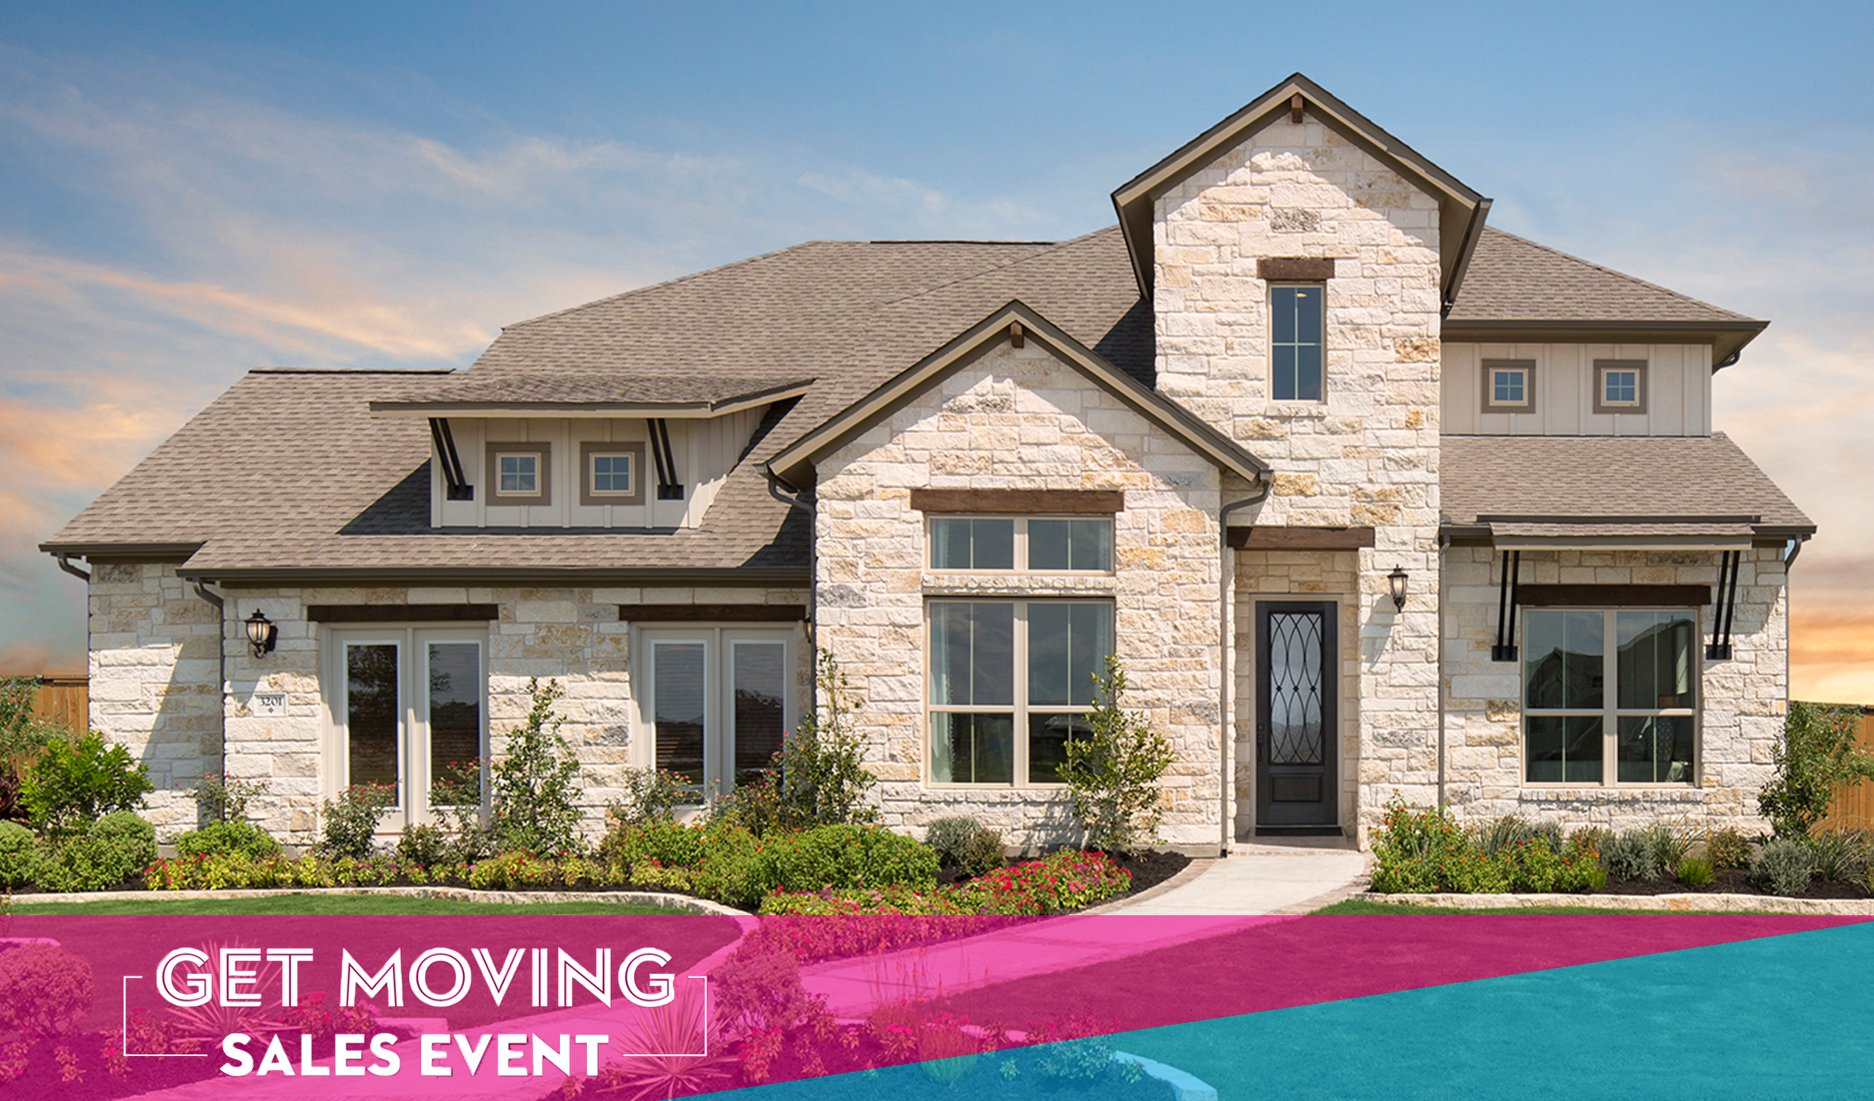 Coventry Homes: Get Moving Sales Event – $0 Closing Costs On Inventory Homes, Now Extended!